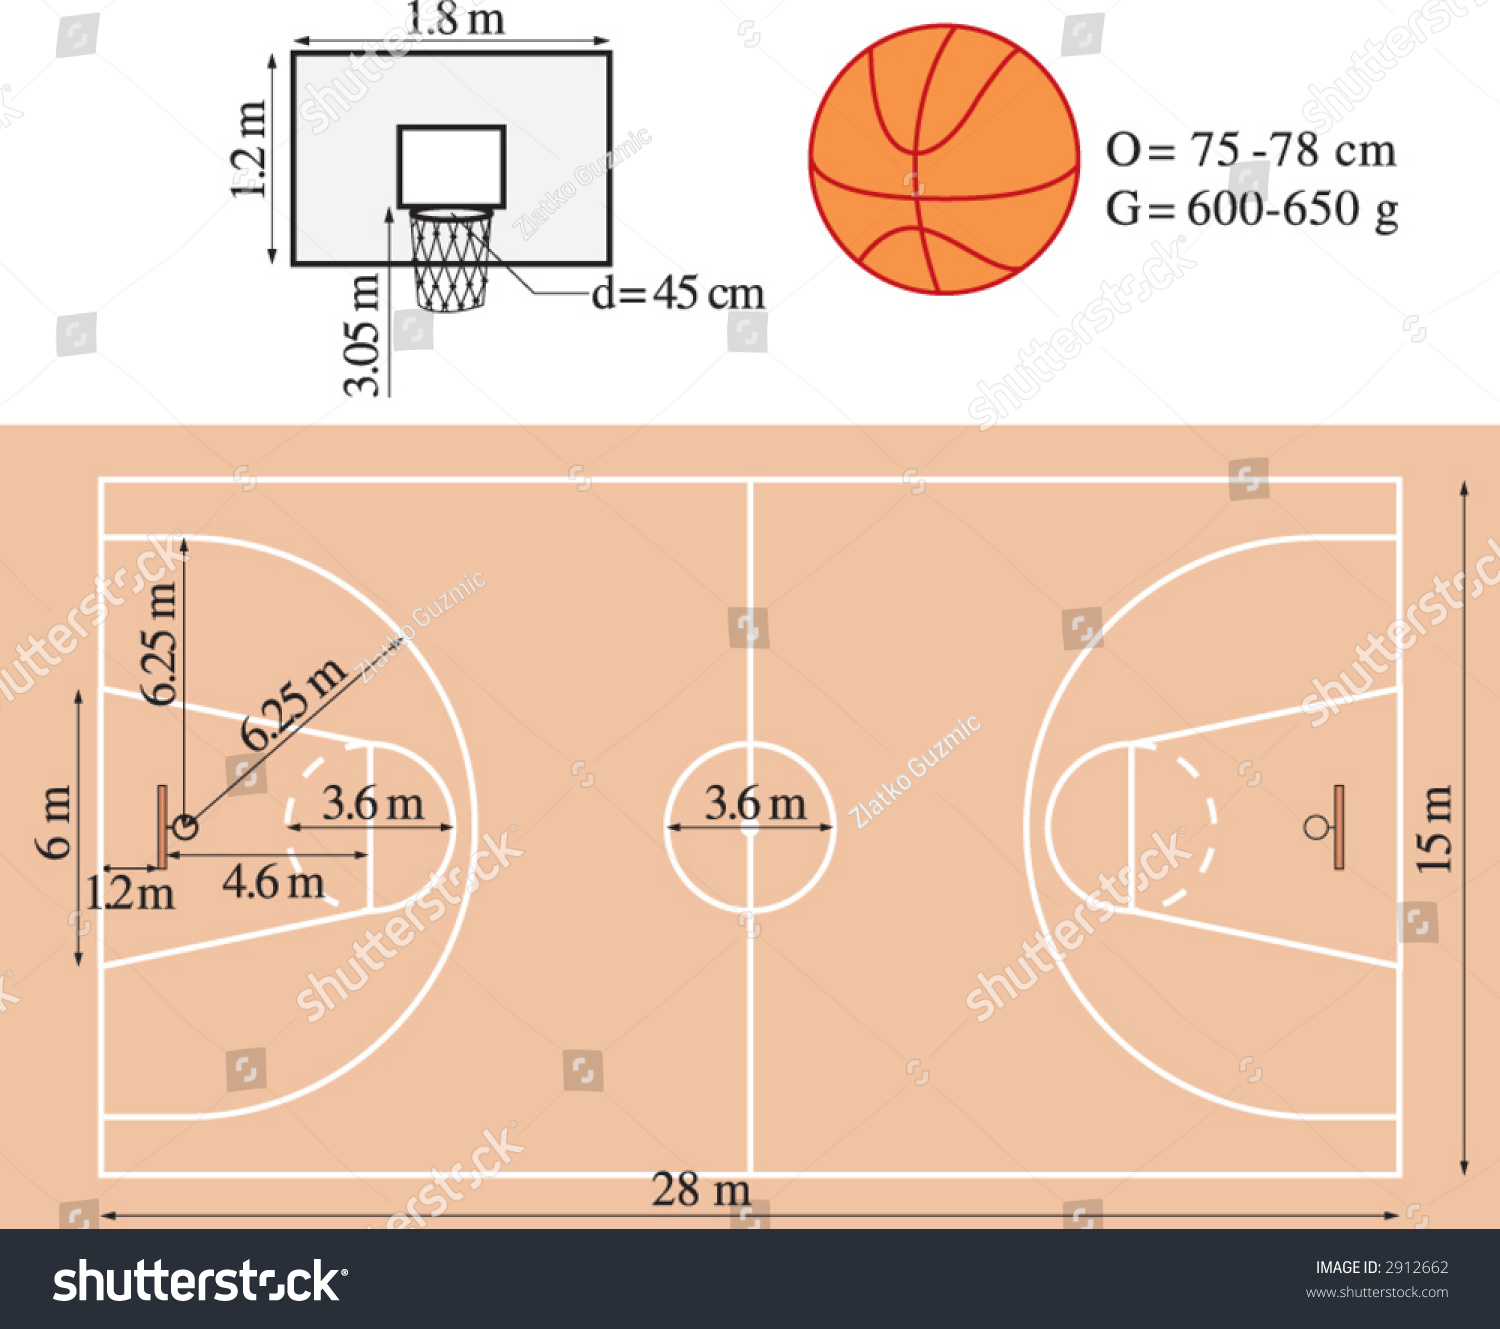 Dimensions of basketball playground stock vector illustration 2912662